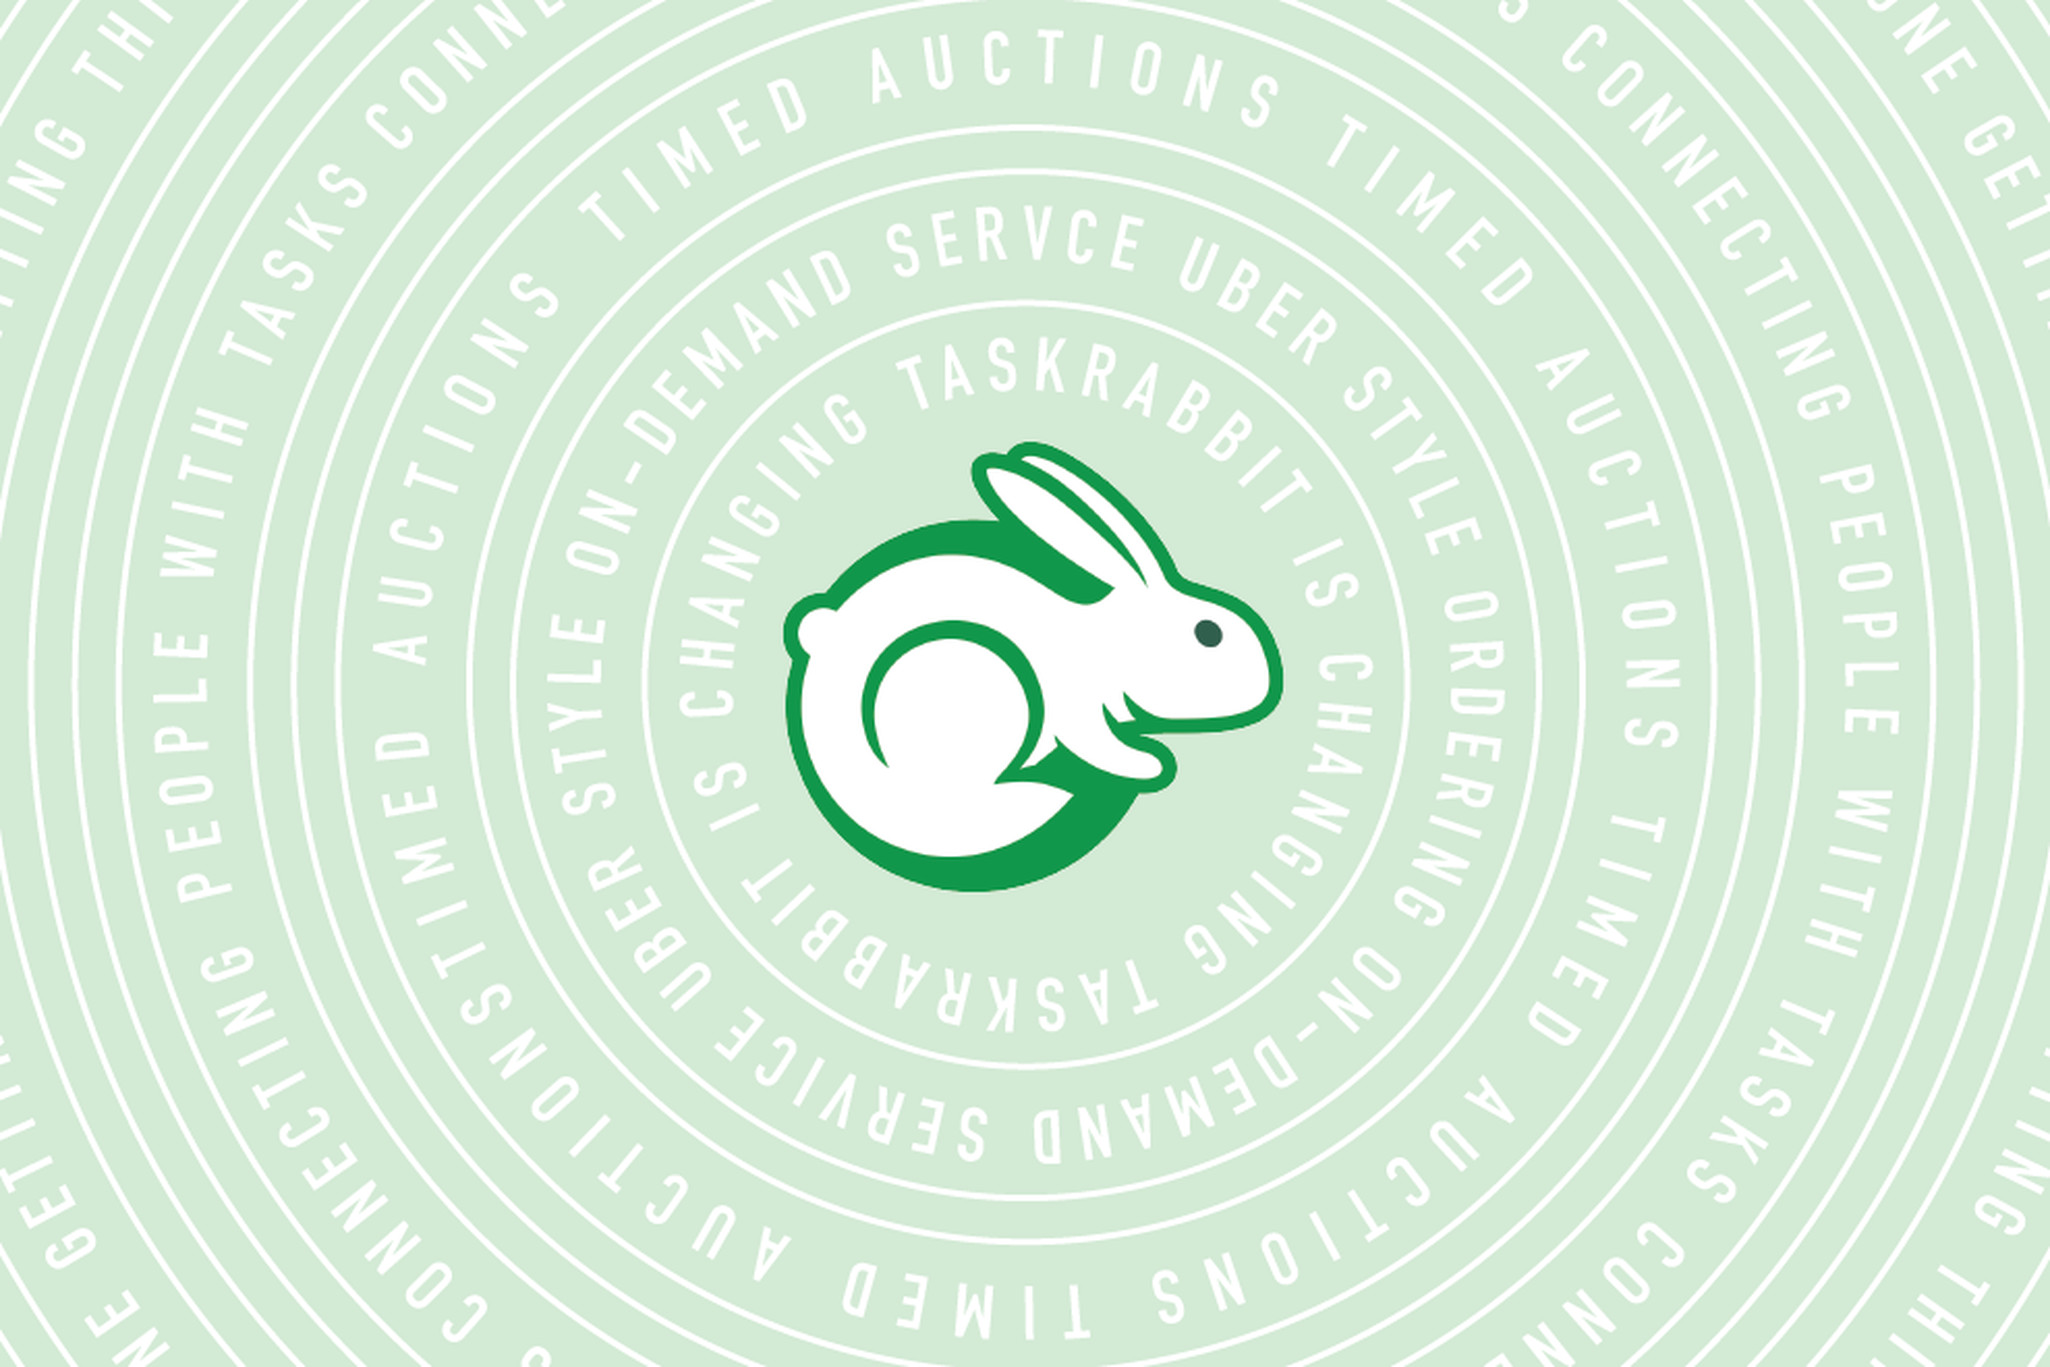 TaskRabbit is blowing up its business model and becoming the.